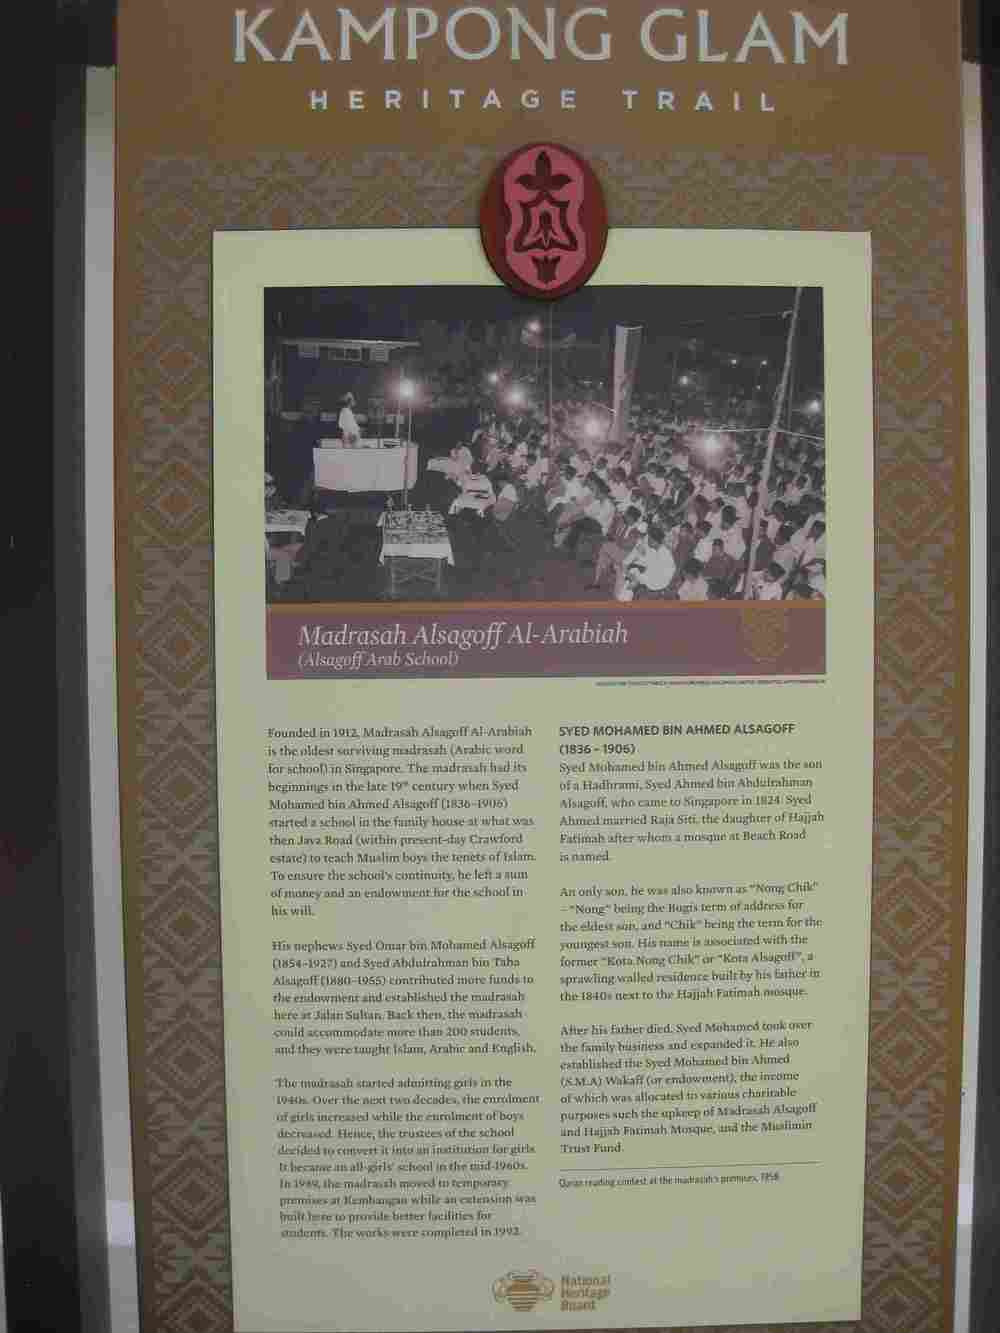 The National Heritage Board's (NHB) placard at Madrasah Alsagoff Al-Arabiah